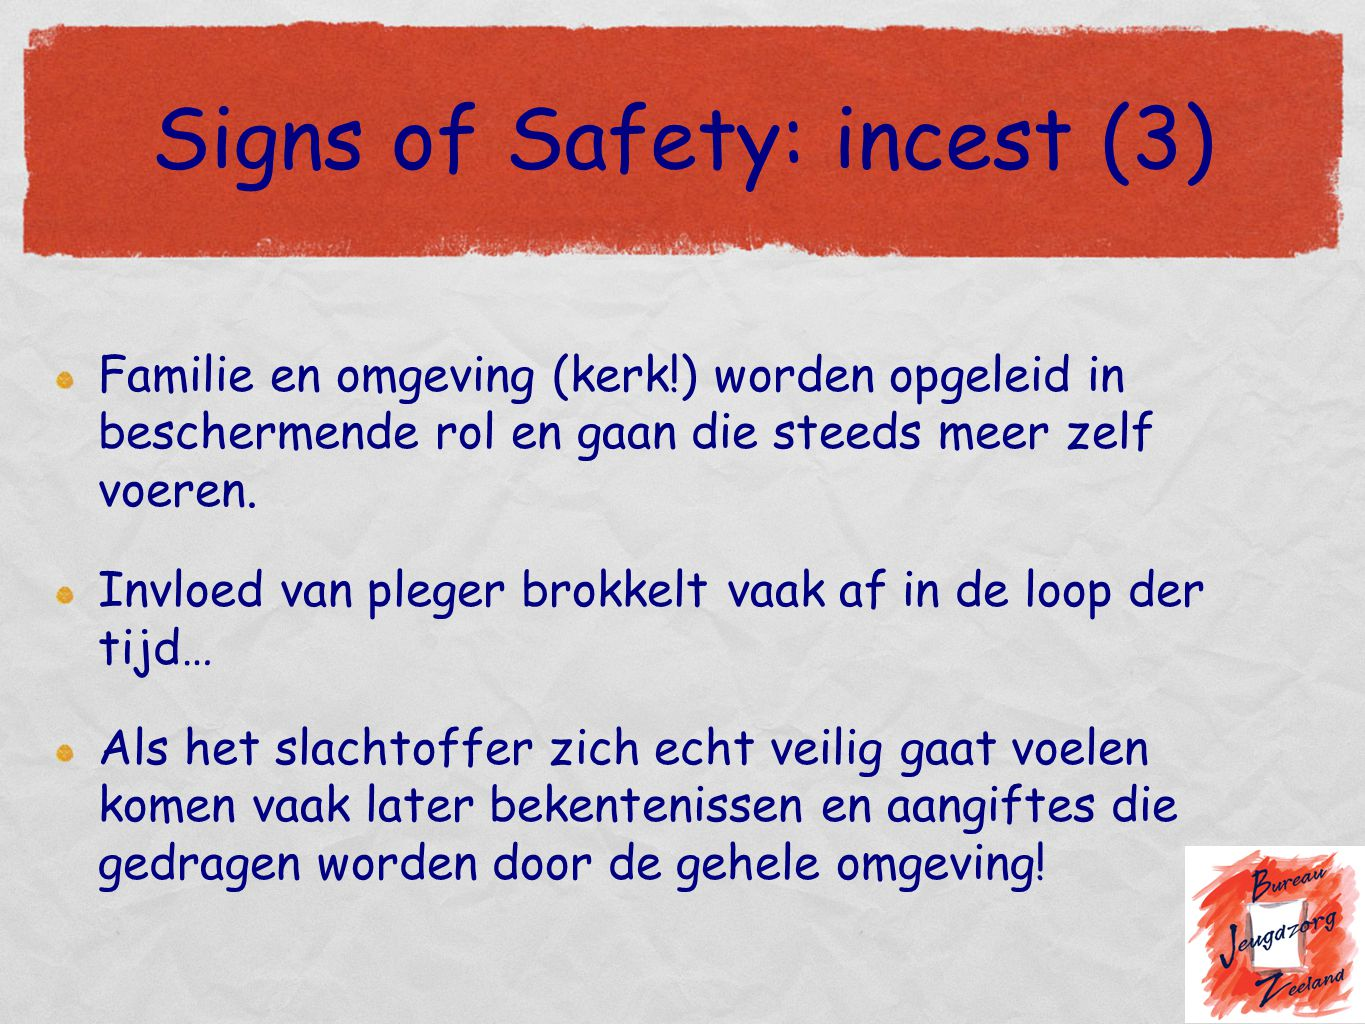 Signs of Safety: incest (3)